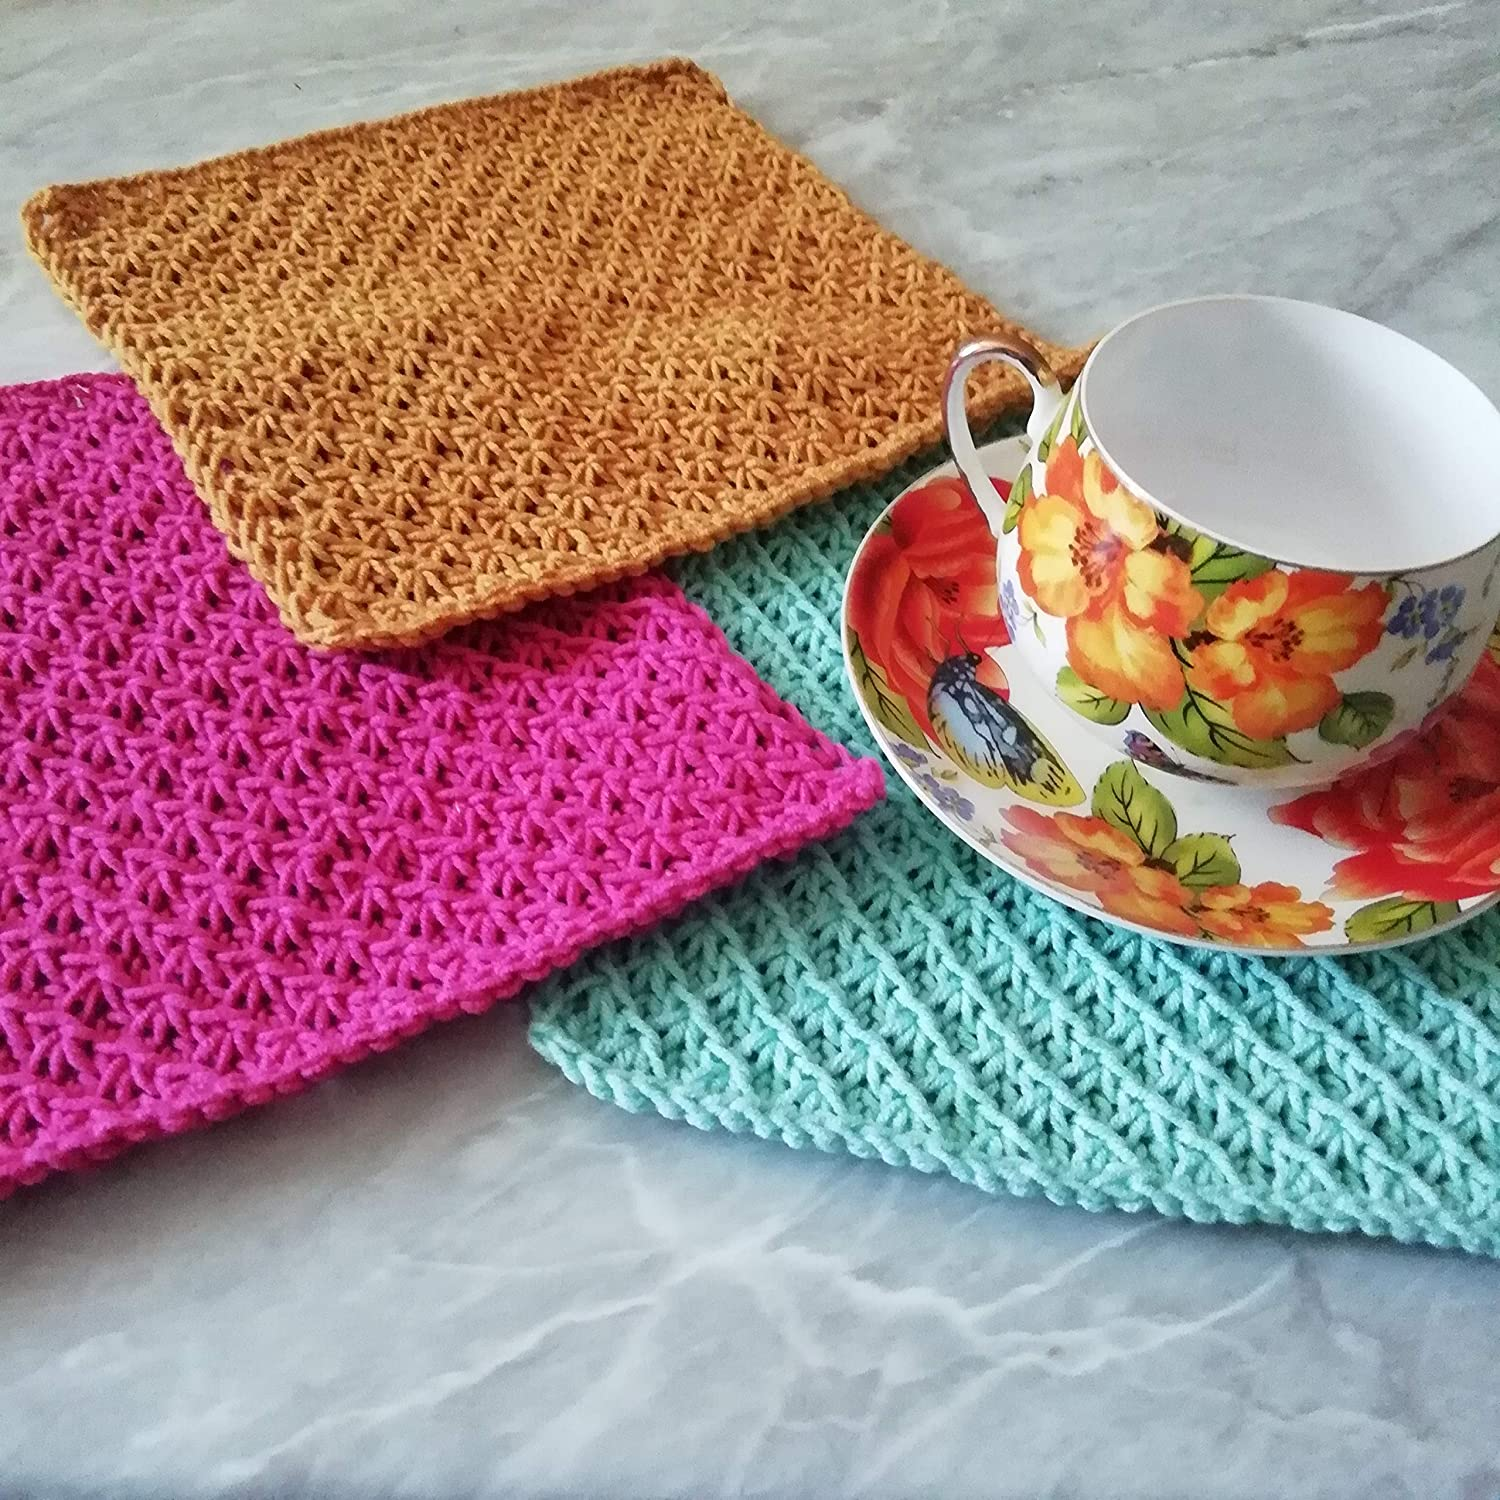 Set 3 Dish Cloths Towels Hand Knitted Cotton Square Reusable Cleaning Supplies Craft Tools Zero Waste Handmade